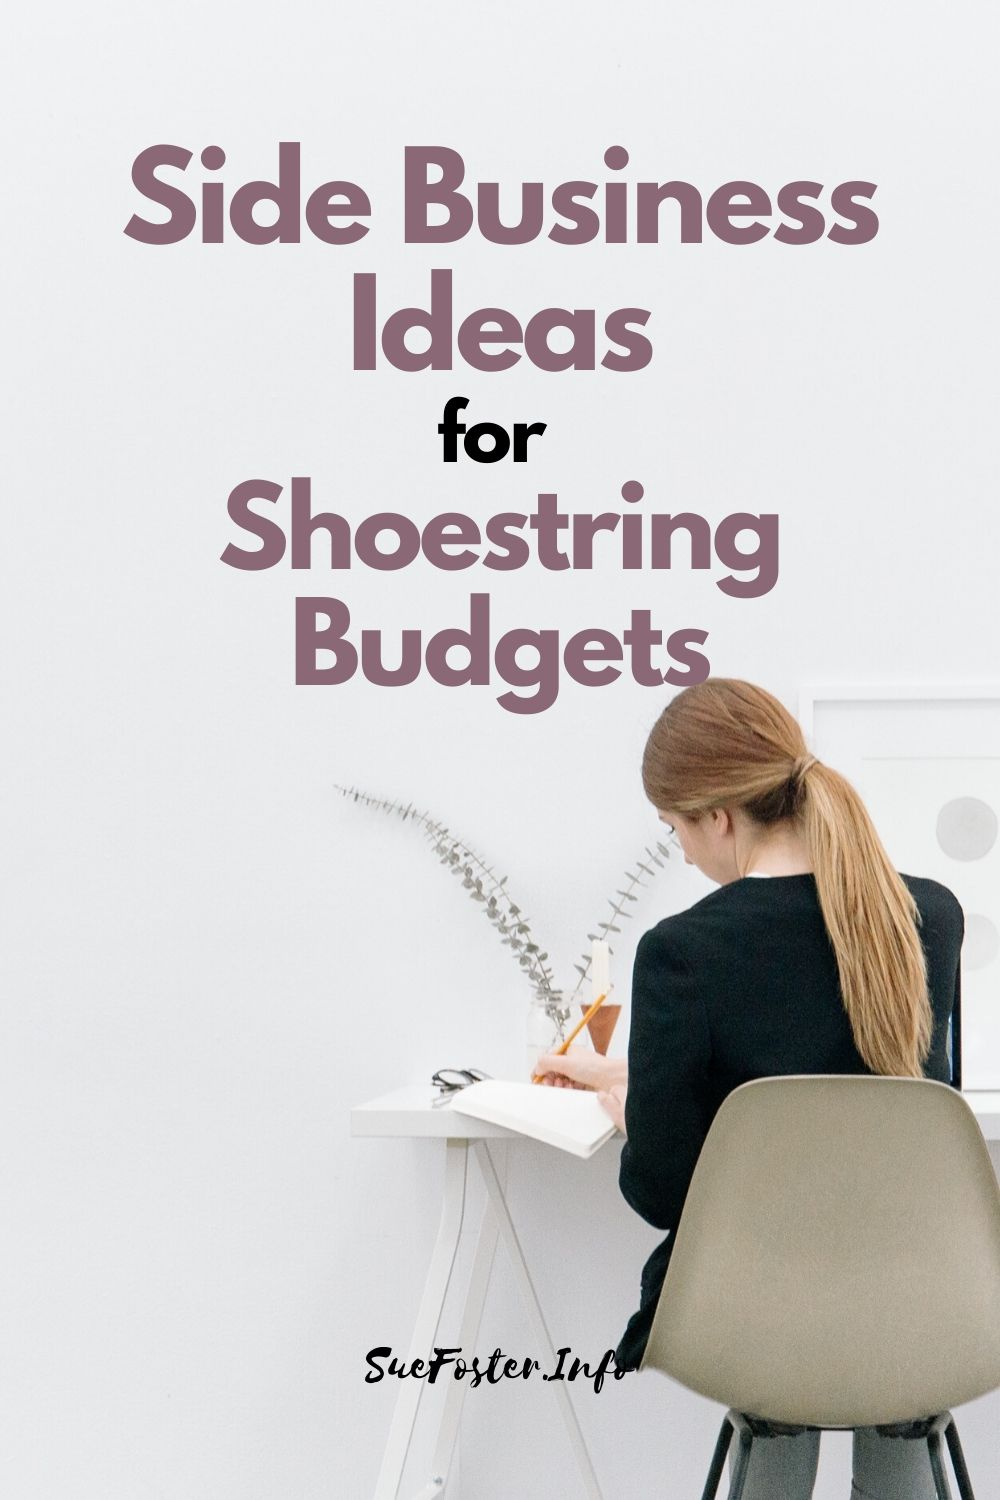 Don't let the costs stop you from setting up a side business, as there are many things you can do with very little outlay.